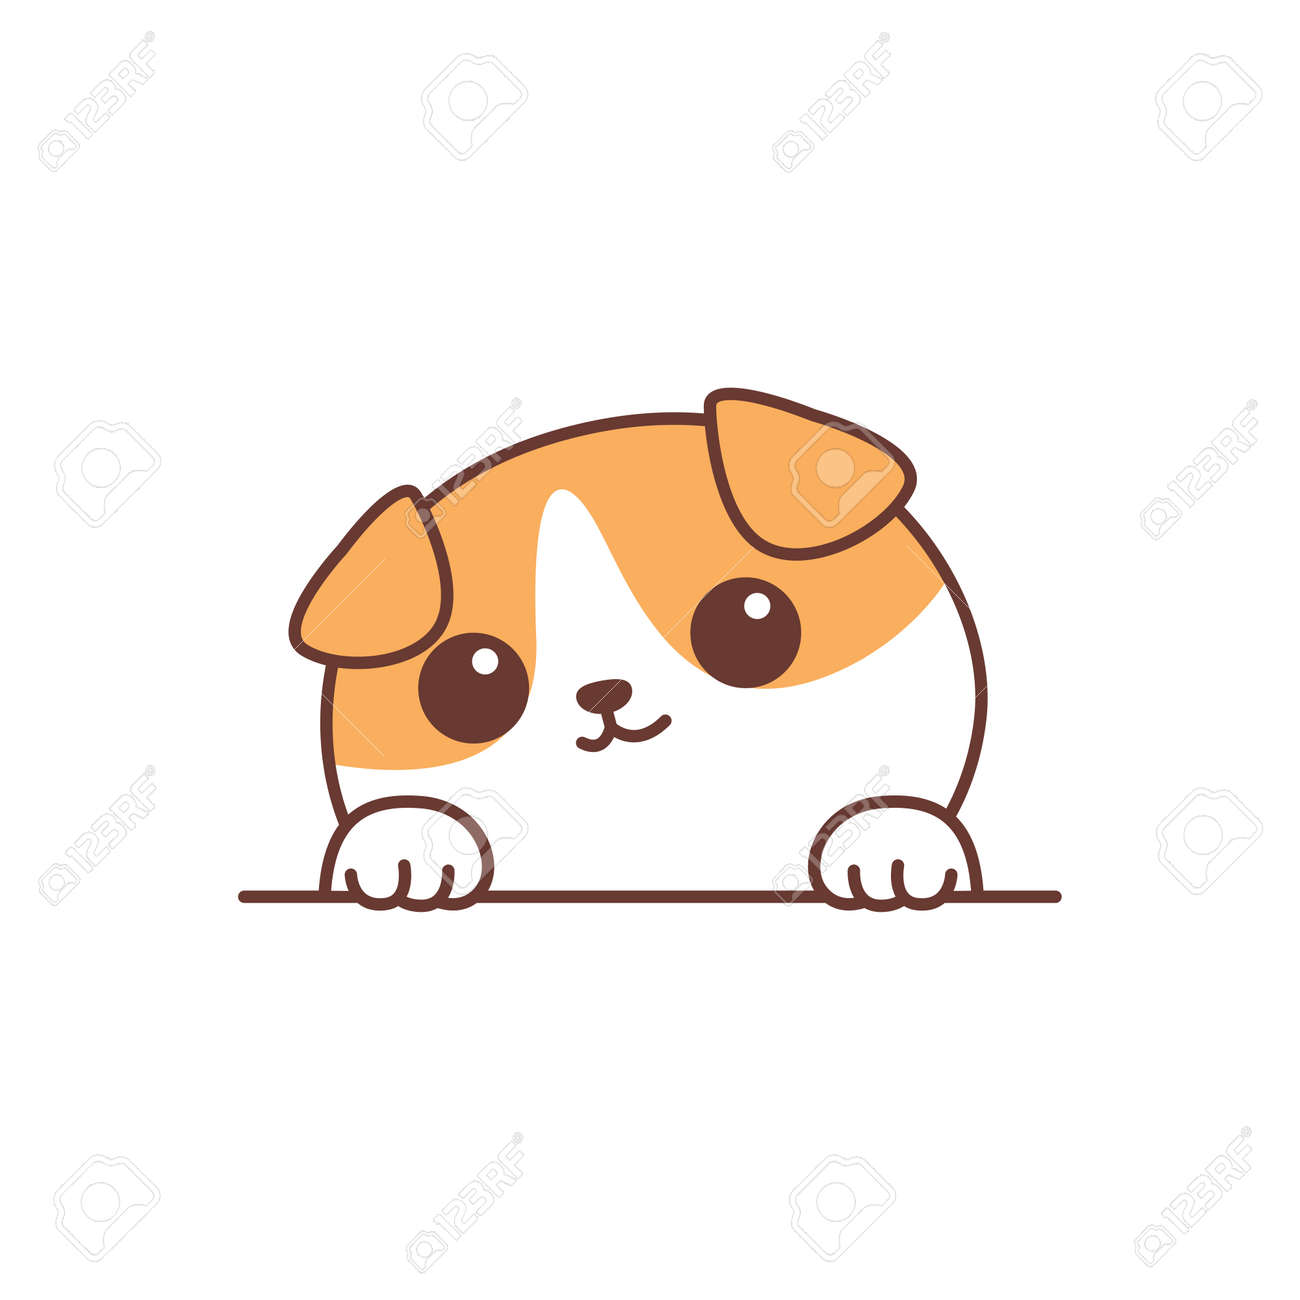 Cute scottish fold cat paws up over wall cartoon, vector illustration - 170584574